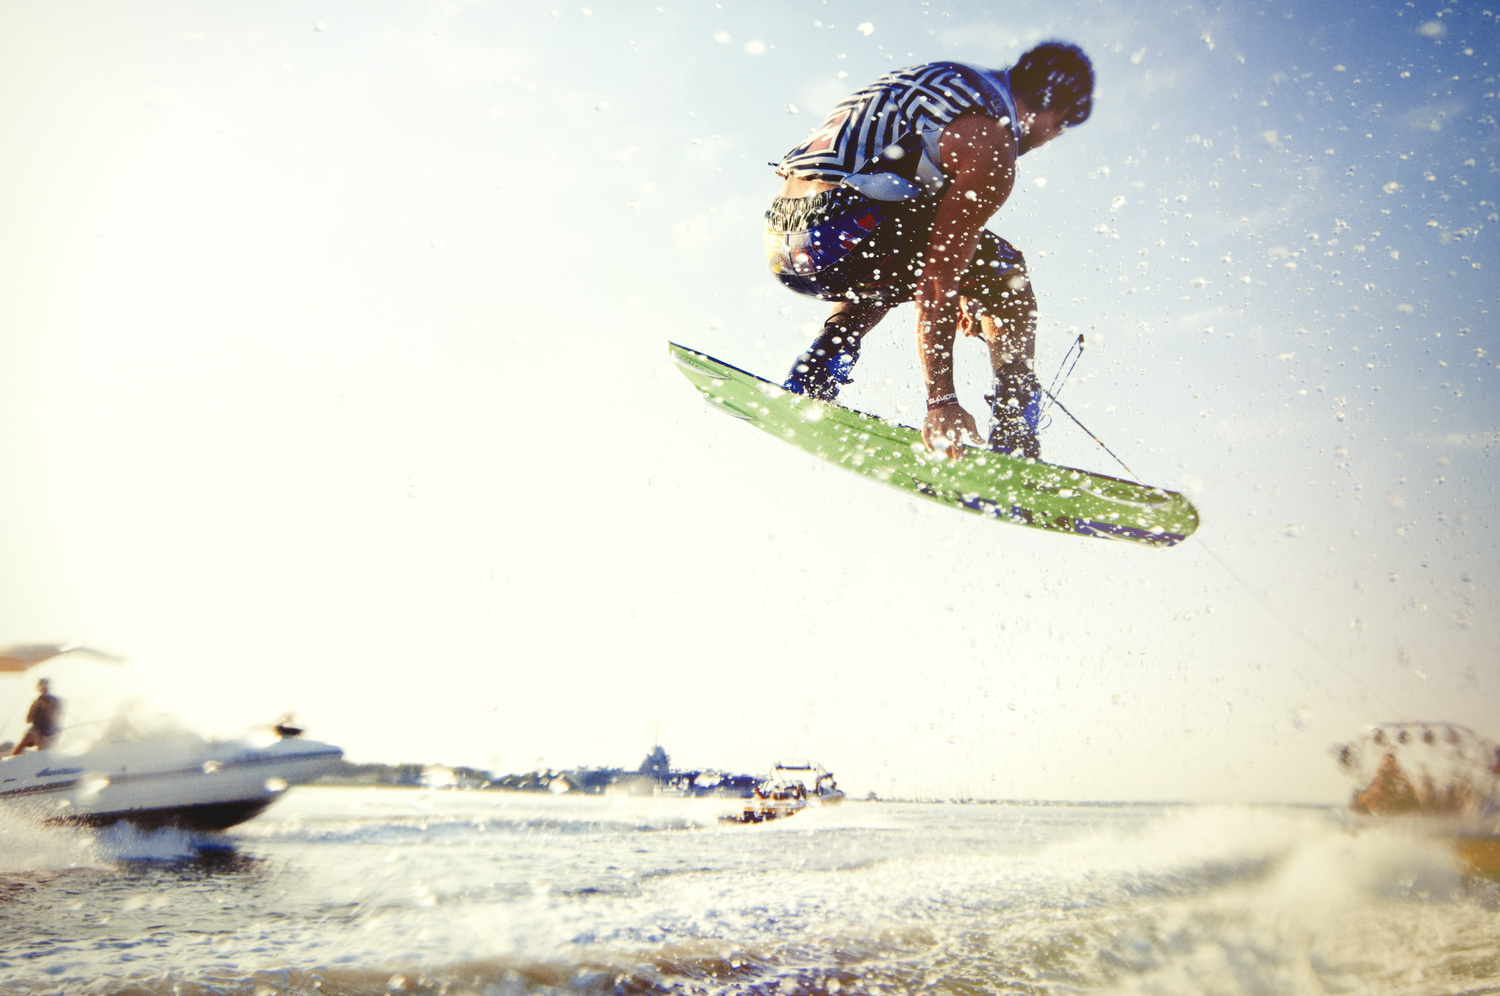 Wakeboarding Photoshoot by Patrick Hall